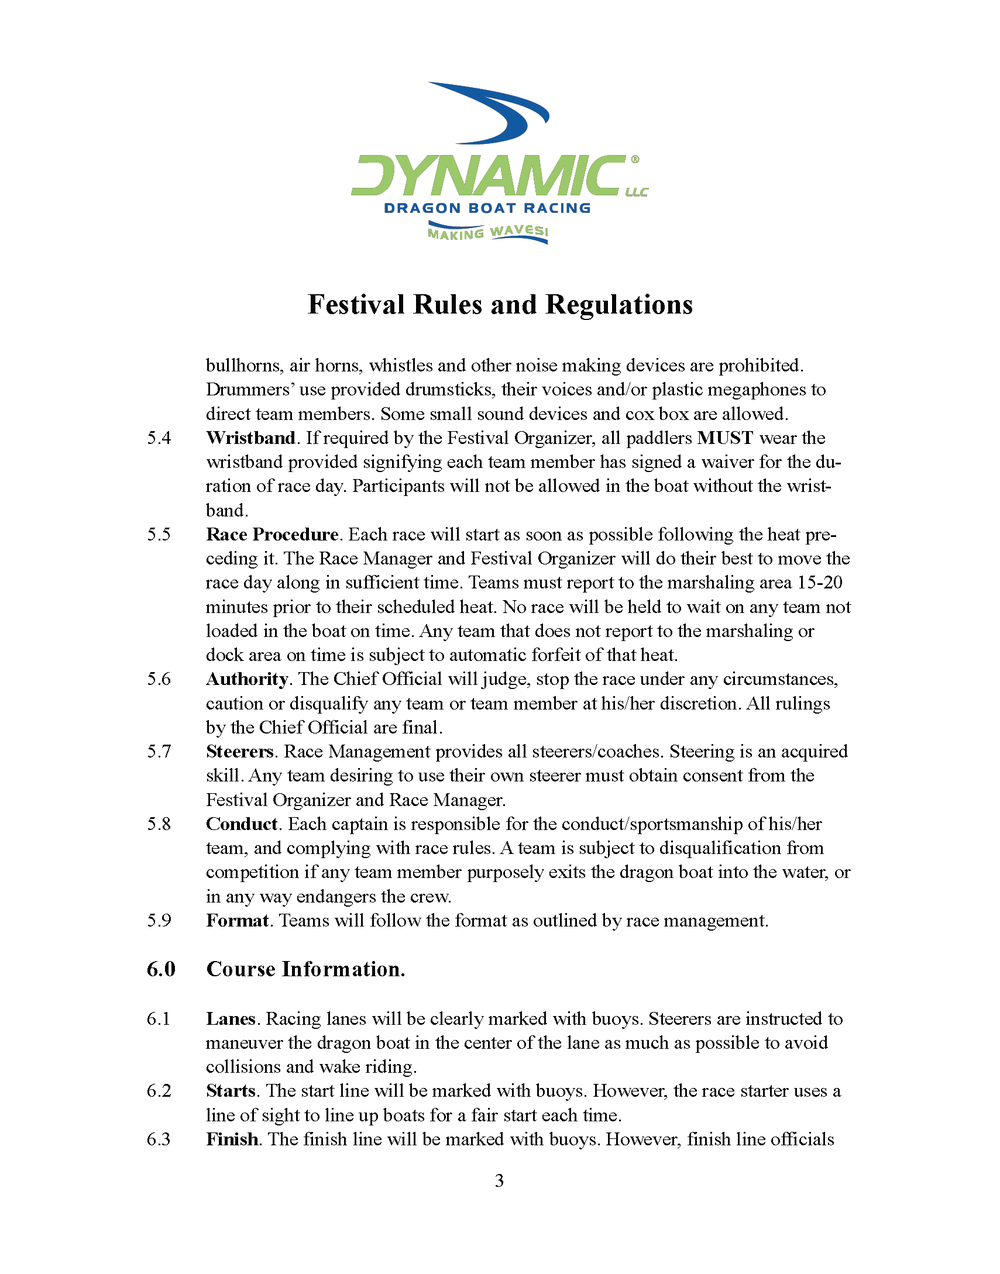 Dynamic_Festival_RulesRegulations_2019_Page_03.png